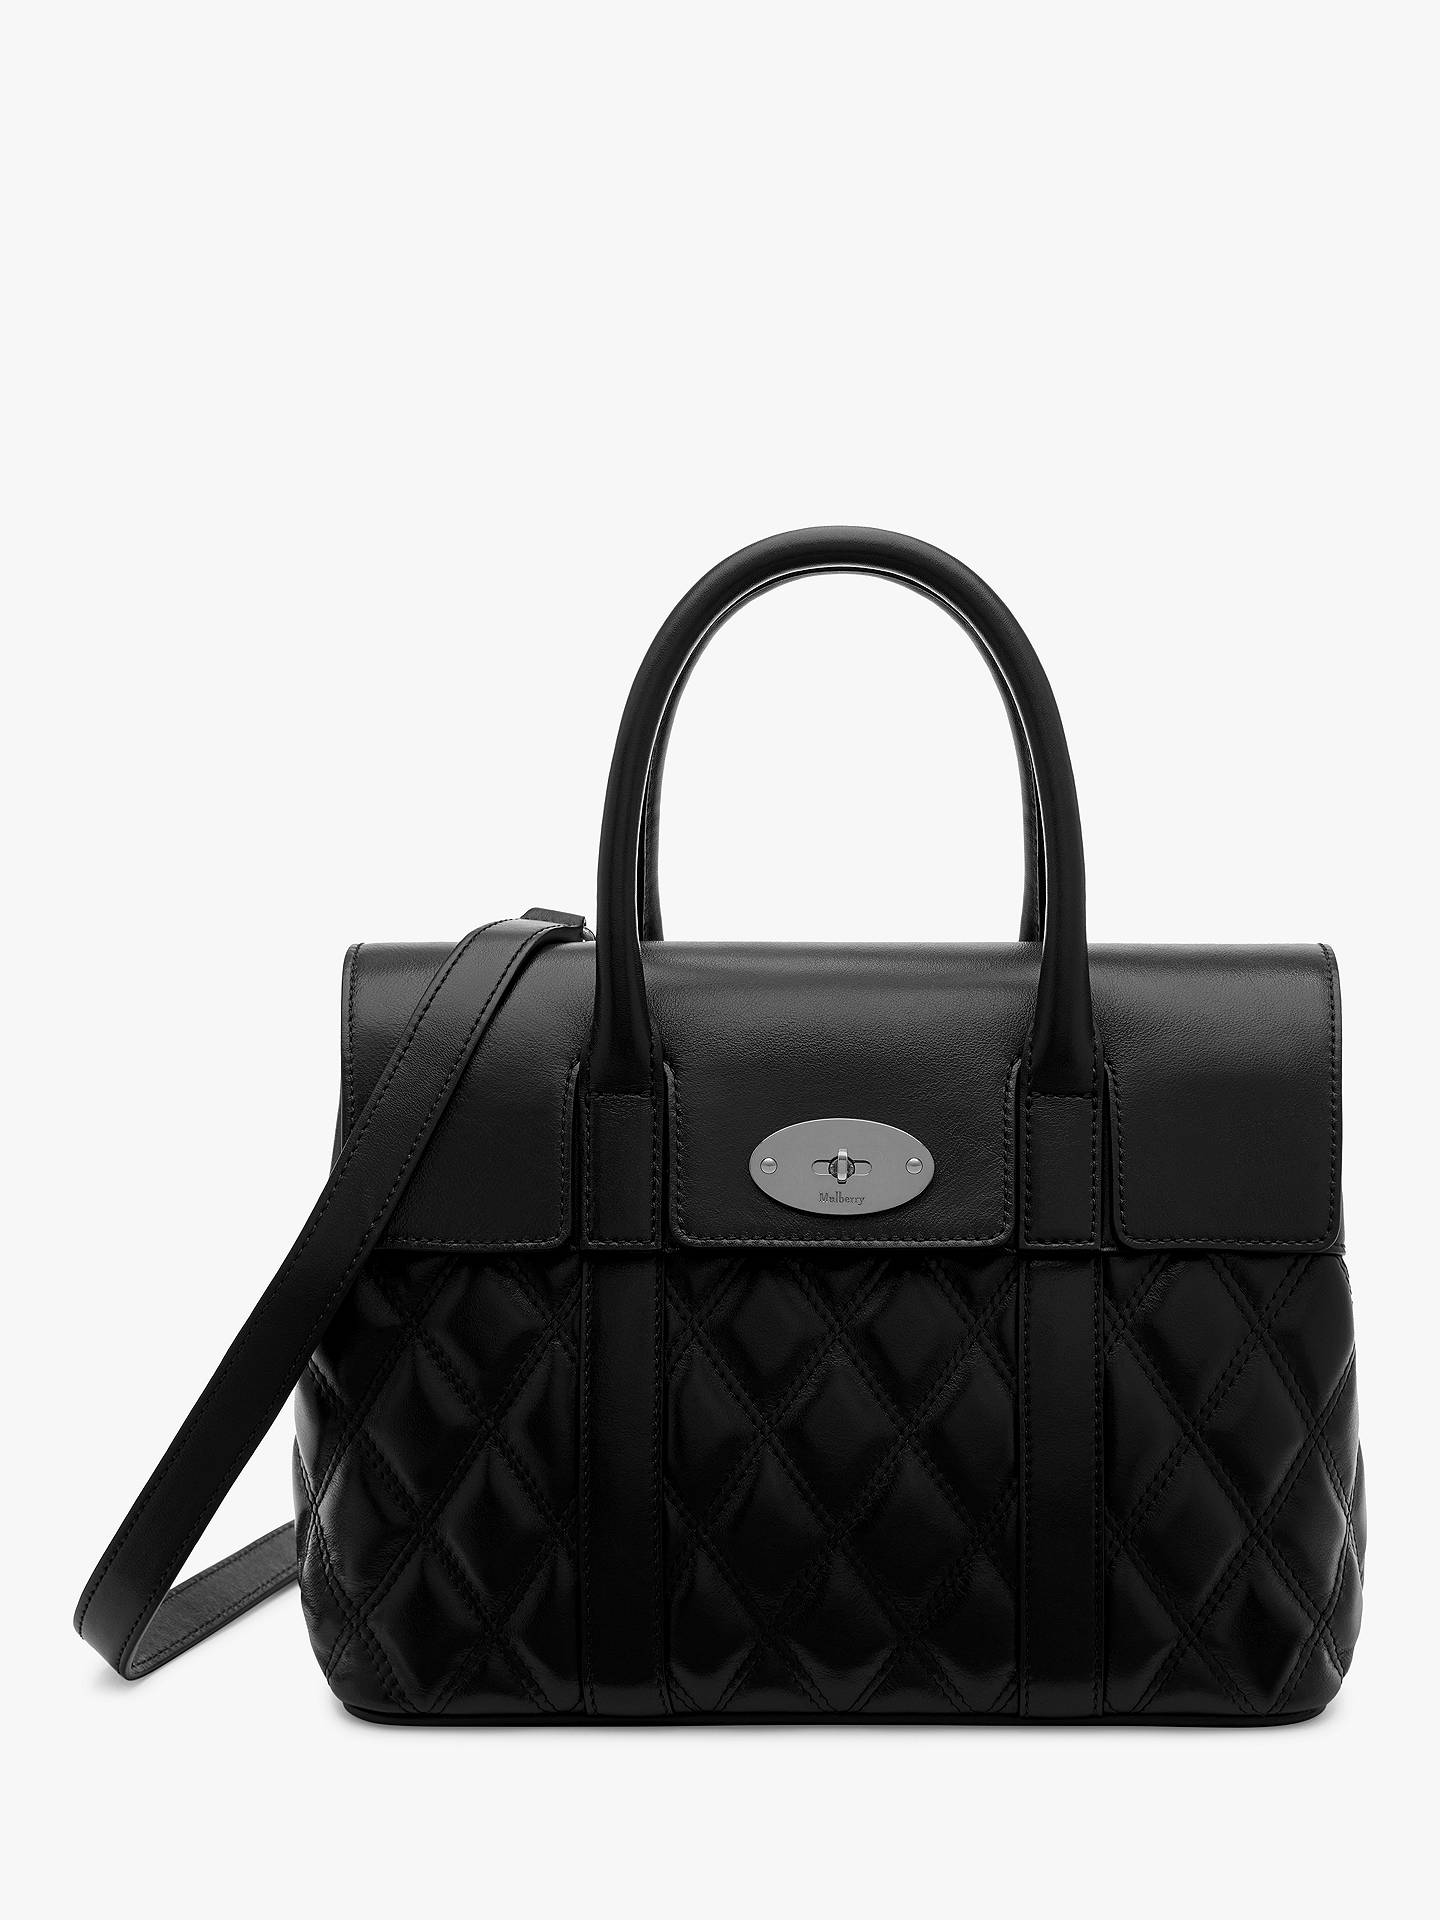 BuyMulberry Small Bayswater Quilted Smooth Calf Leather Tote Bag, Black  Online at johnlewis.com ... 45226231db